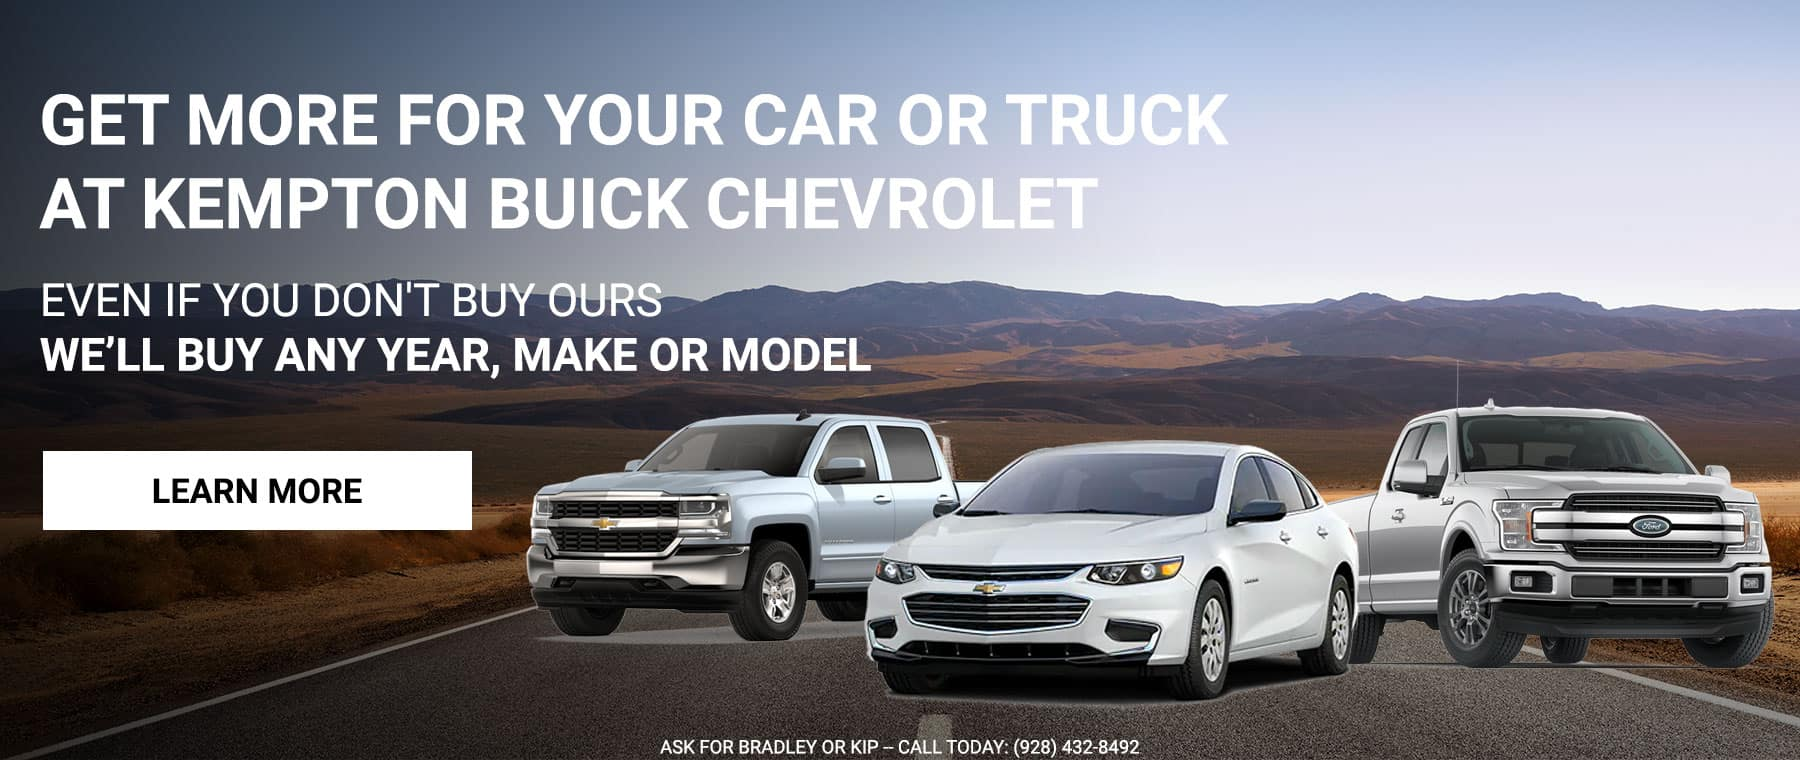 Get more for your Car or Truck at Kempton Buick Chevrolet EVEN IF YOU DON'T BUY OURS We'll buy any Year, Make or Model